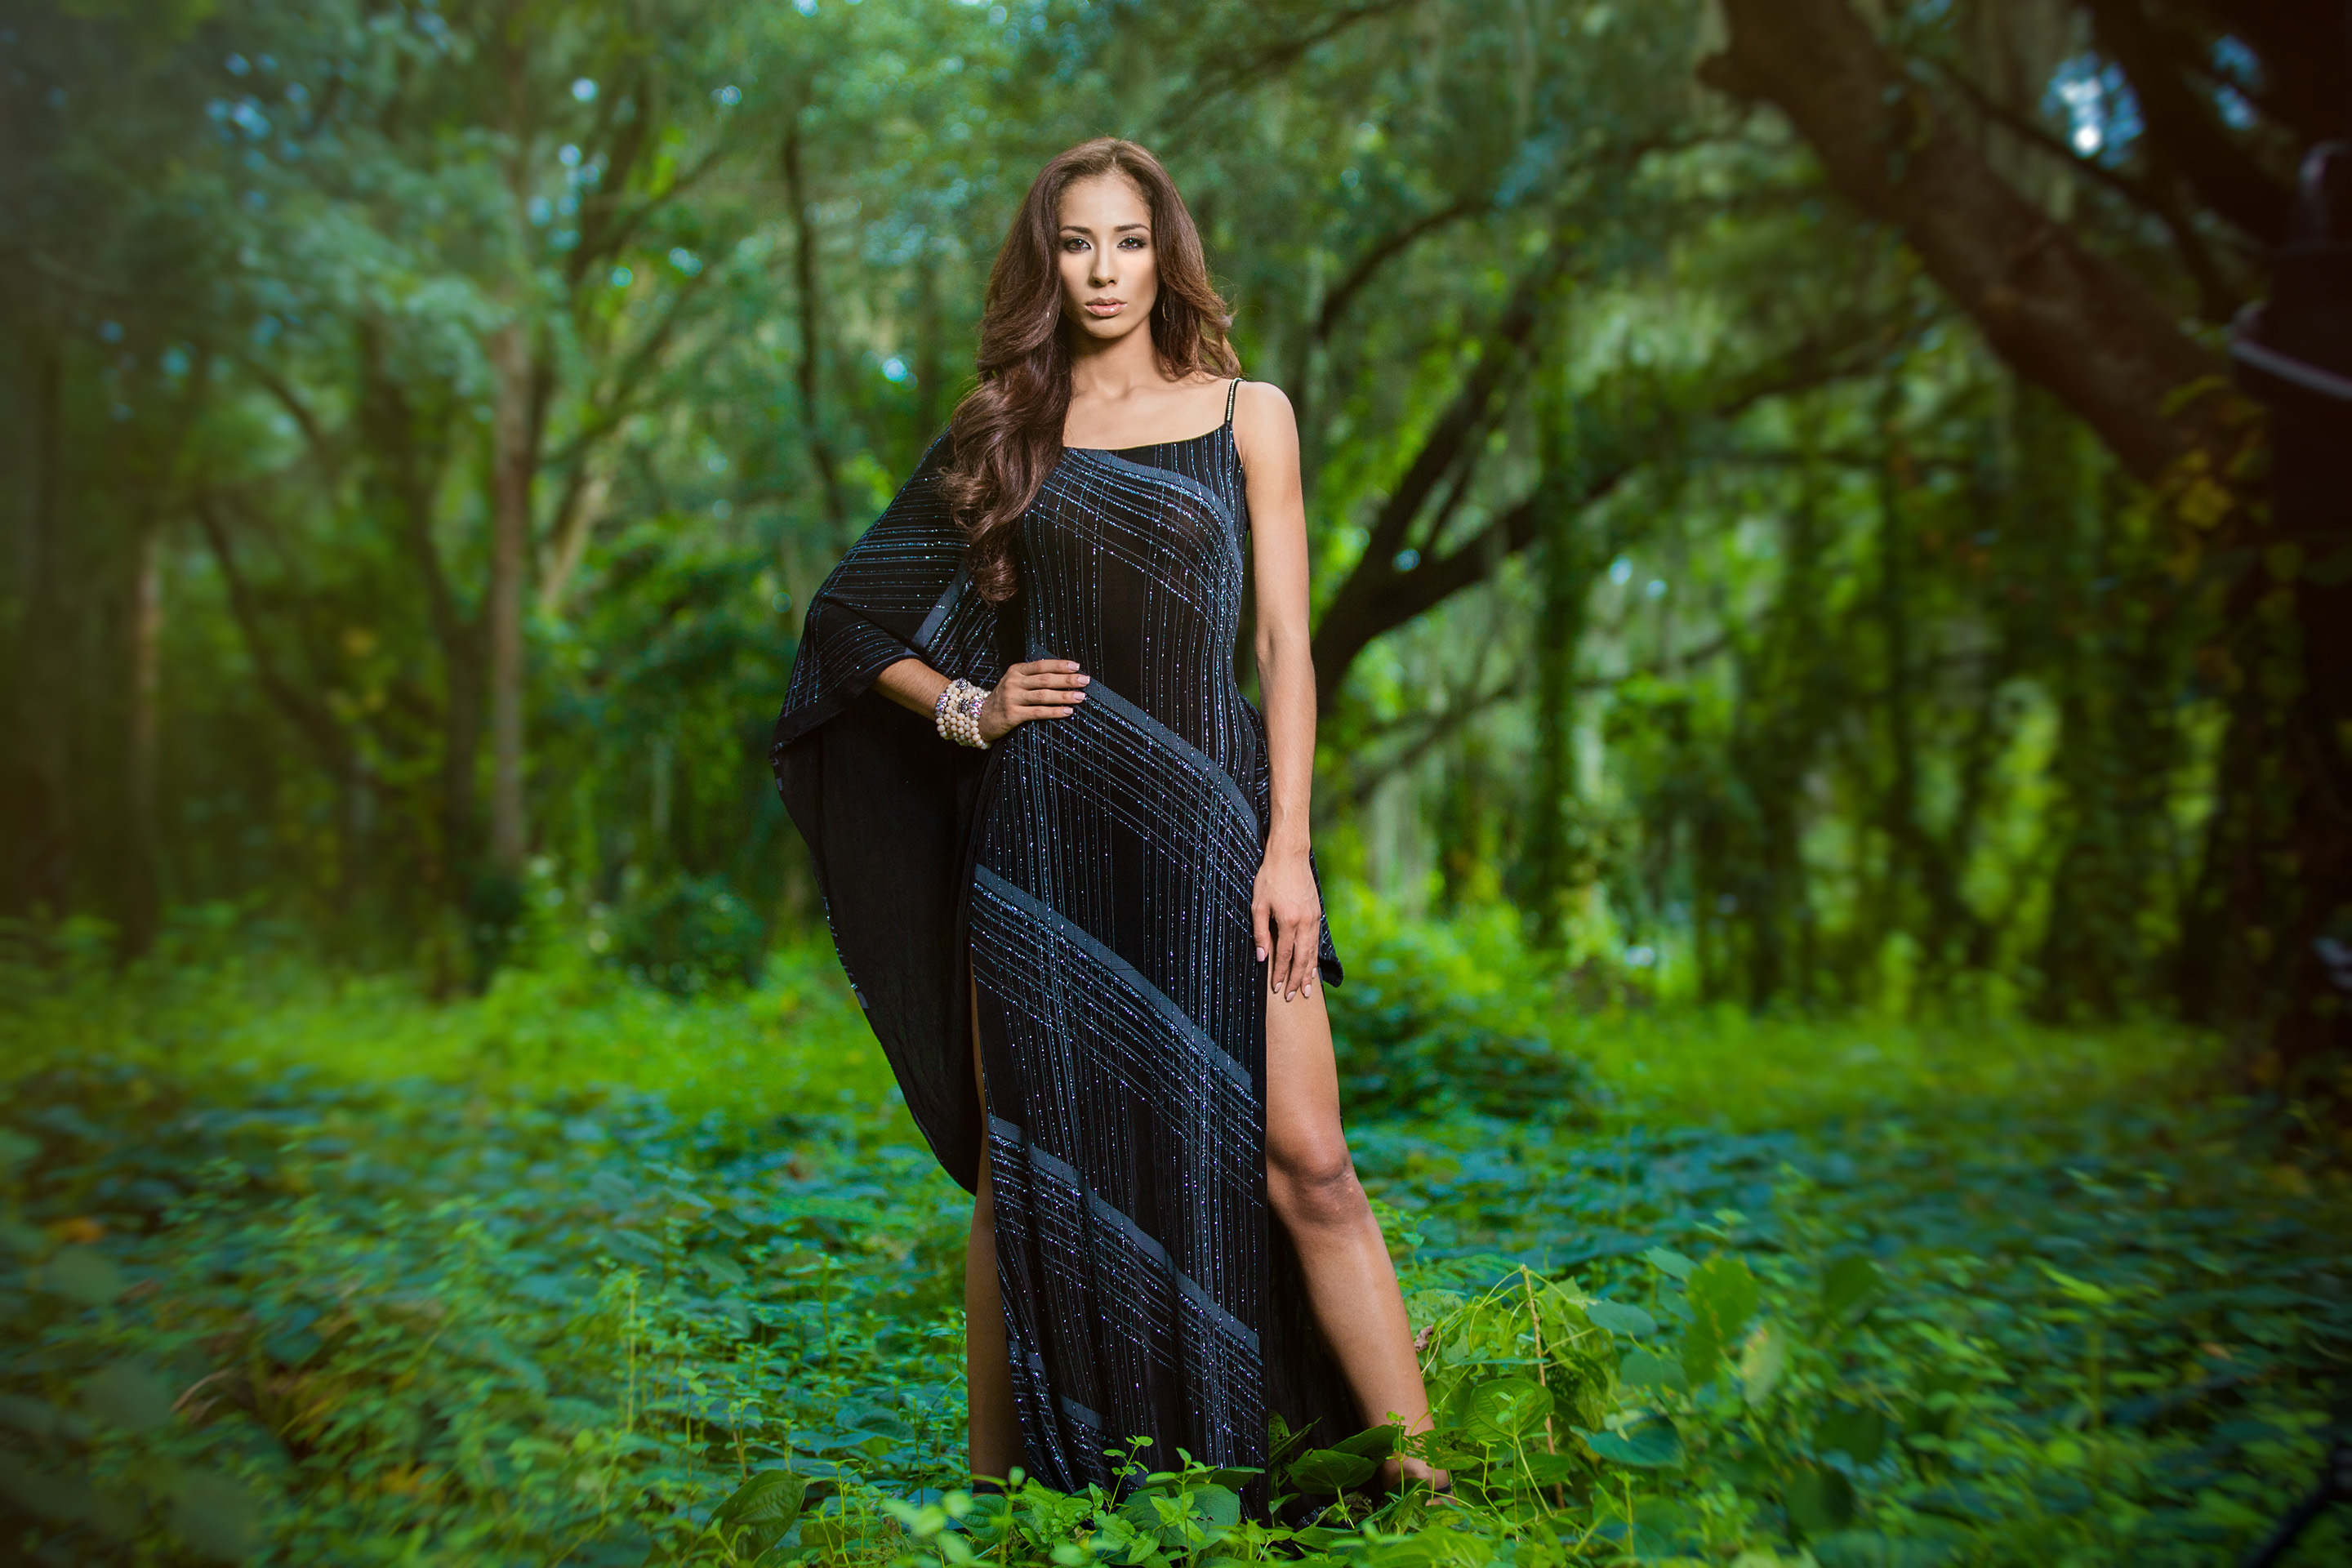 DBatista Photography-Top Model-Forest.jpg